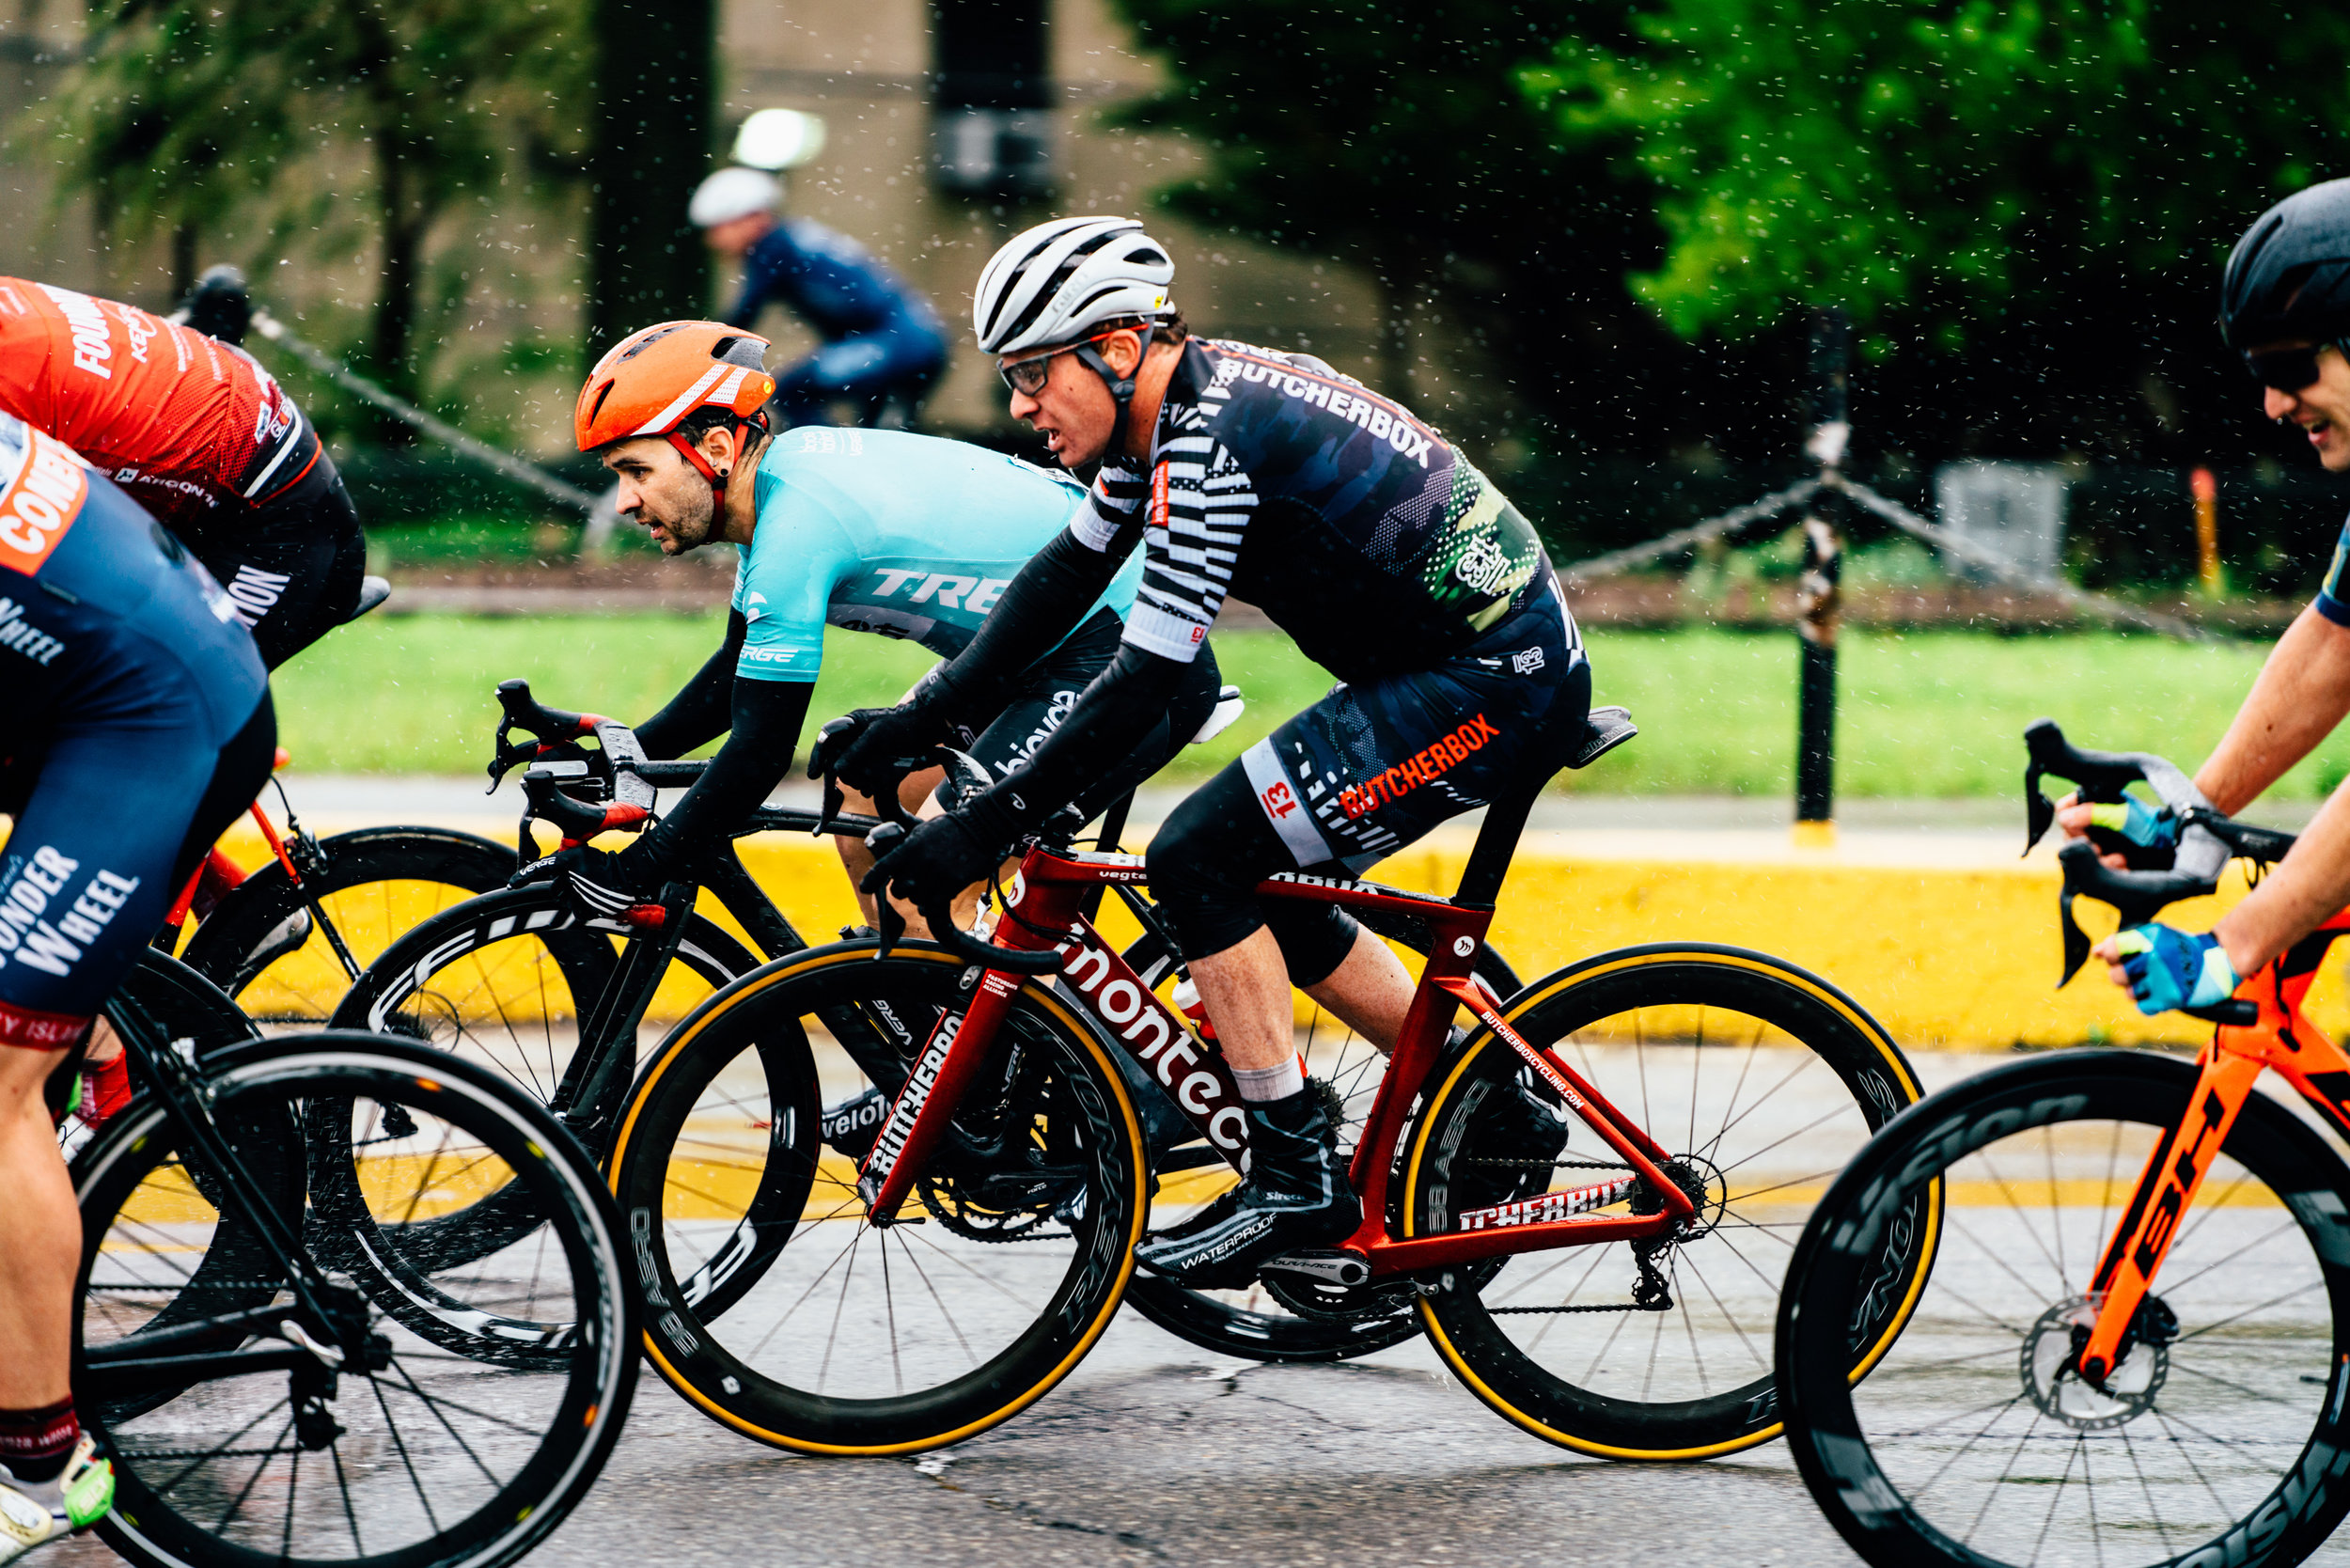 Photo Rhetoric - To Be Determined - Zach Koop Memorial Crit at Orchard Bearch-3038.jpg